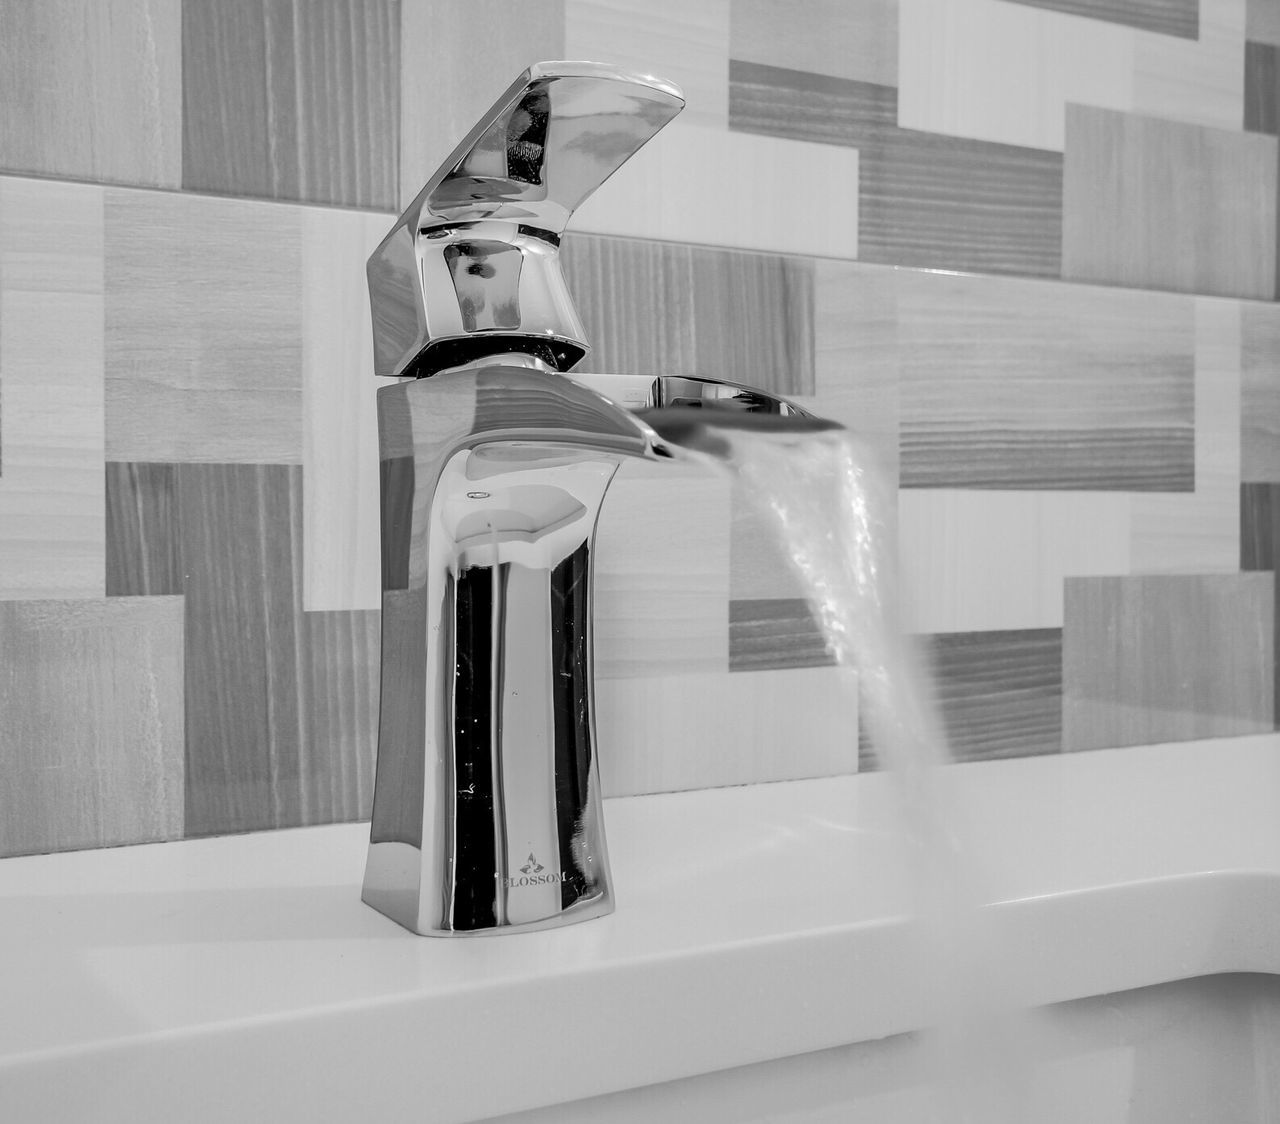 Running Faucet Faucet Faucets Running Water Fixture Bathroomfixture Bathroom